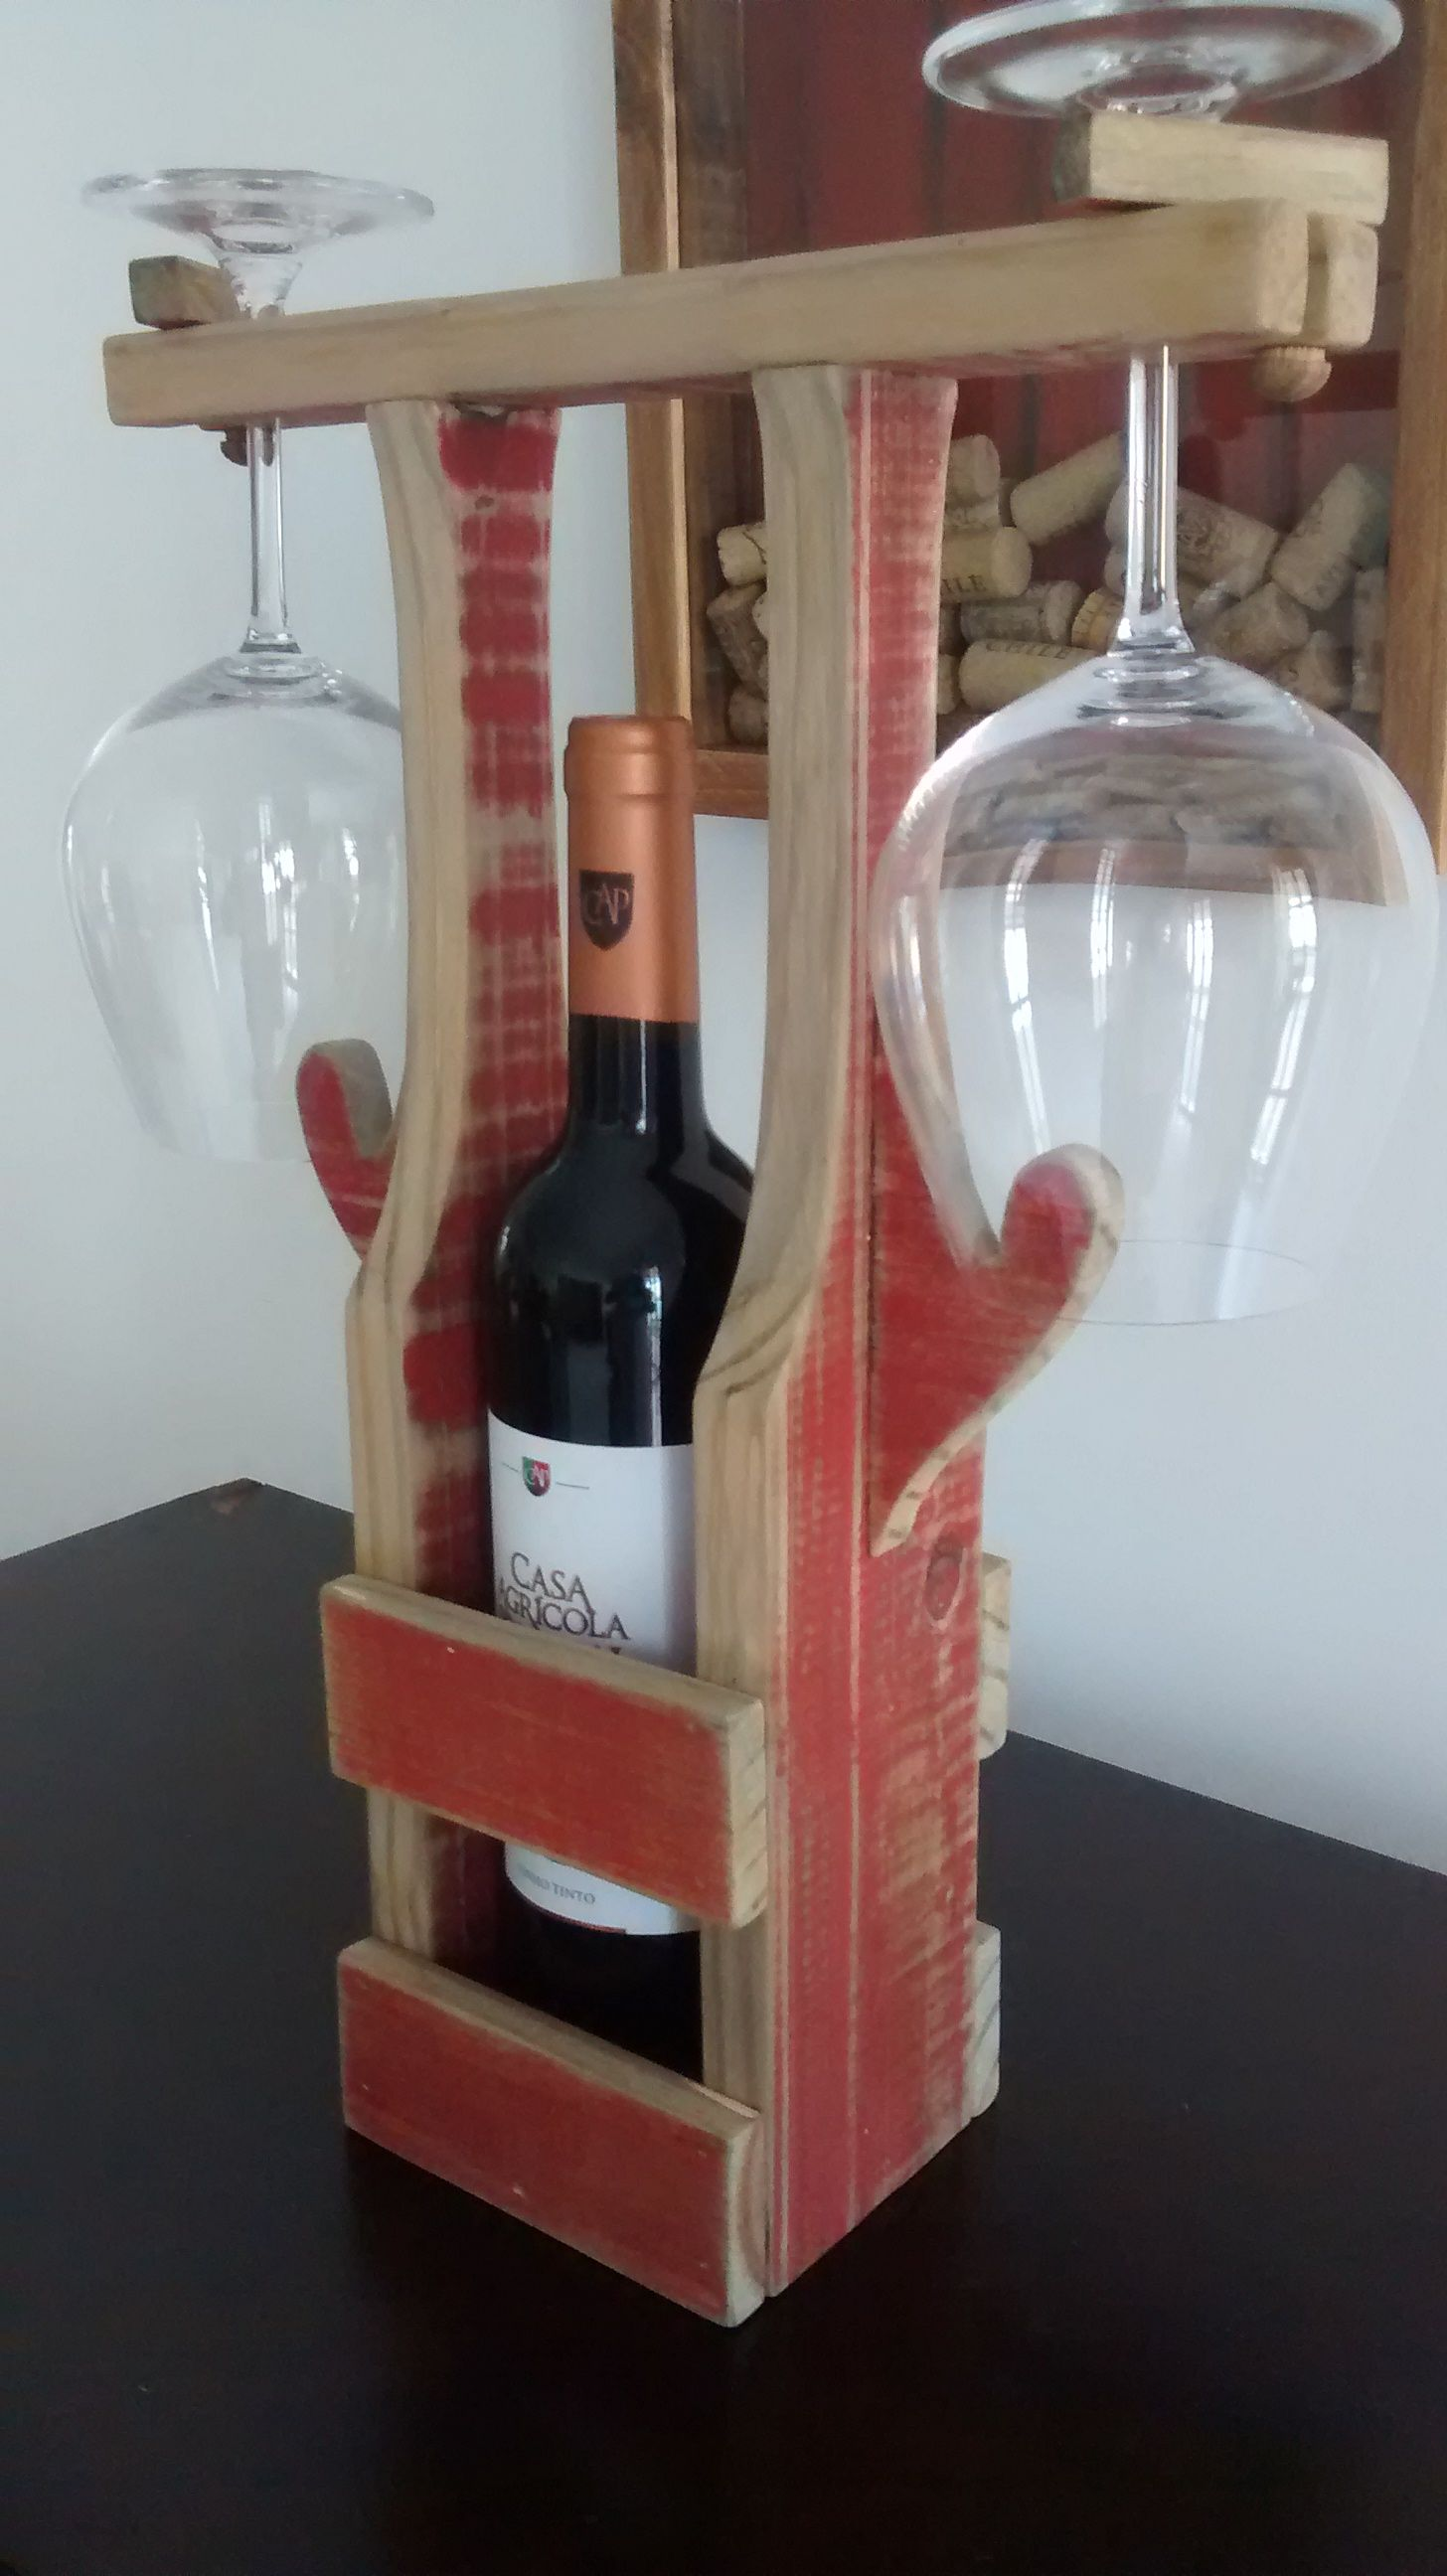 Trans Wine Rustico Vermelho Woodworking Projects That Sell Small Woodworking Projects Wood Block Crafts